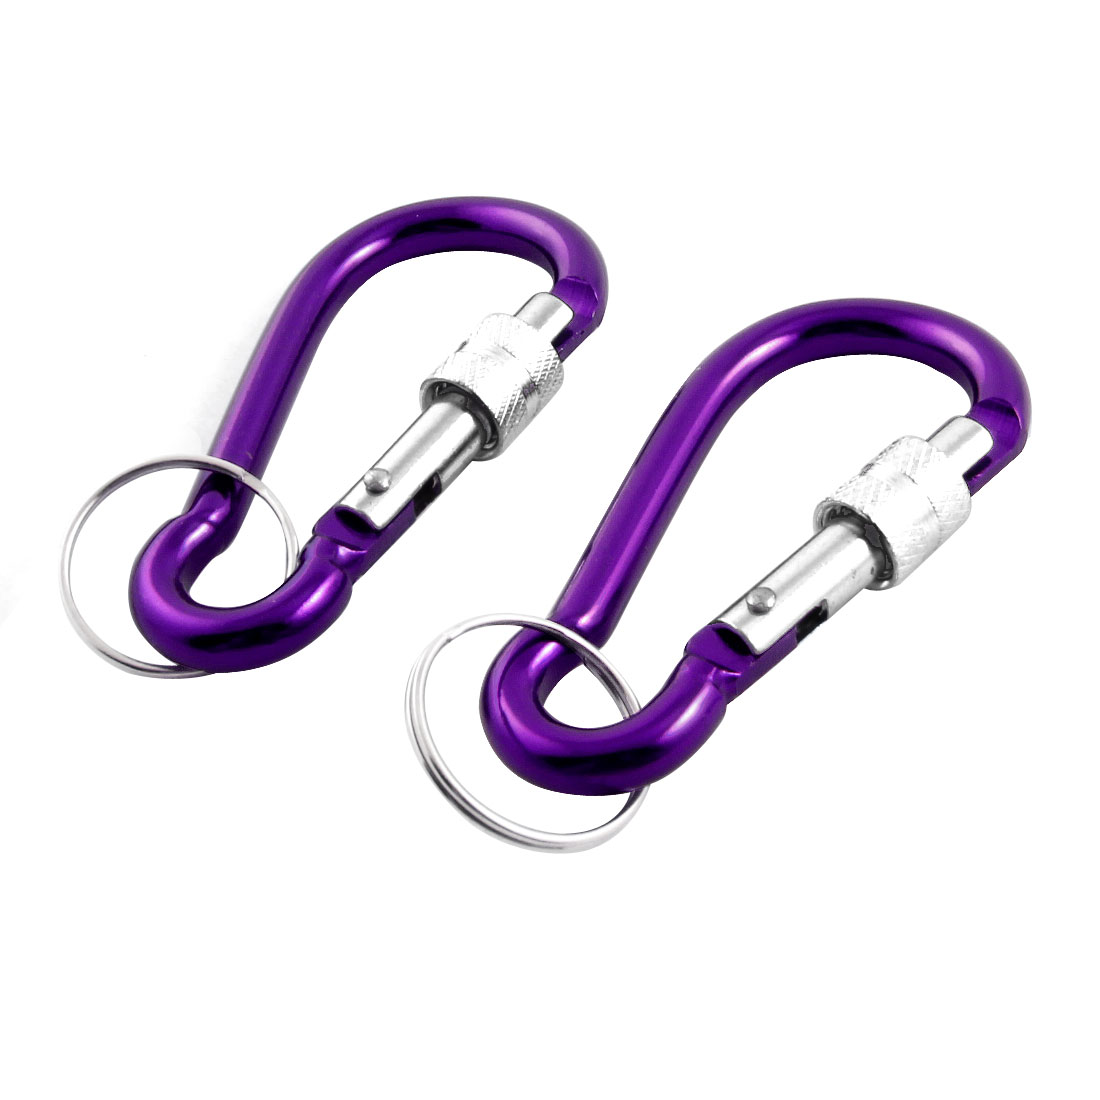 2 Pieces Purple Aluminum Alloy Spring Loaded Gate Carabiner Hook w Keyring